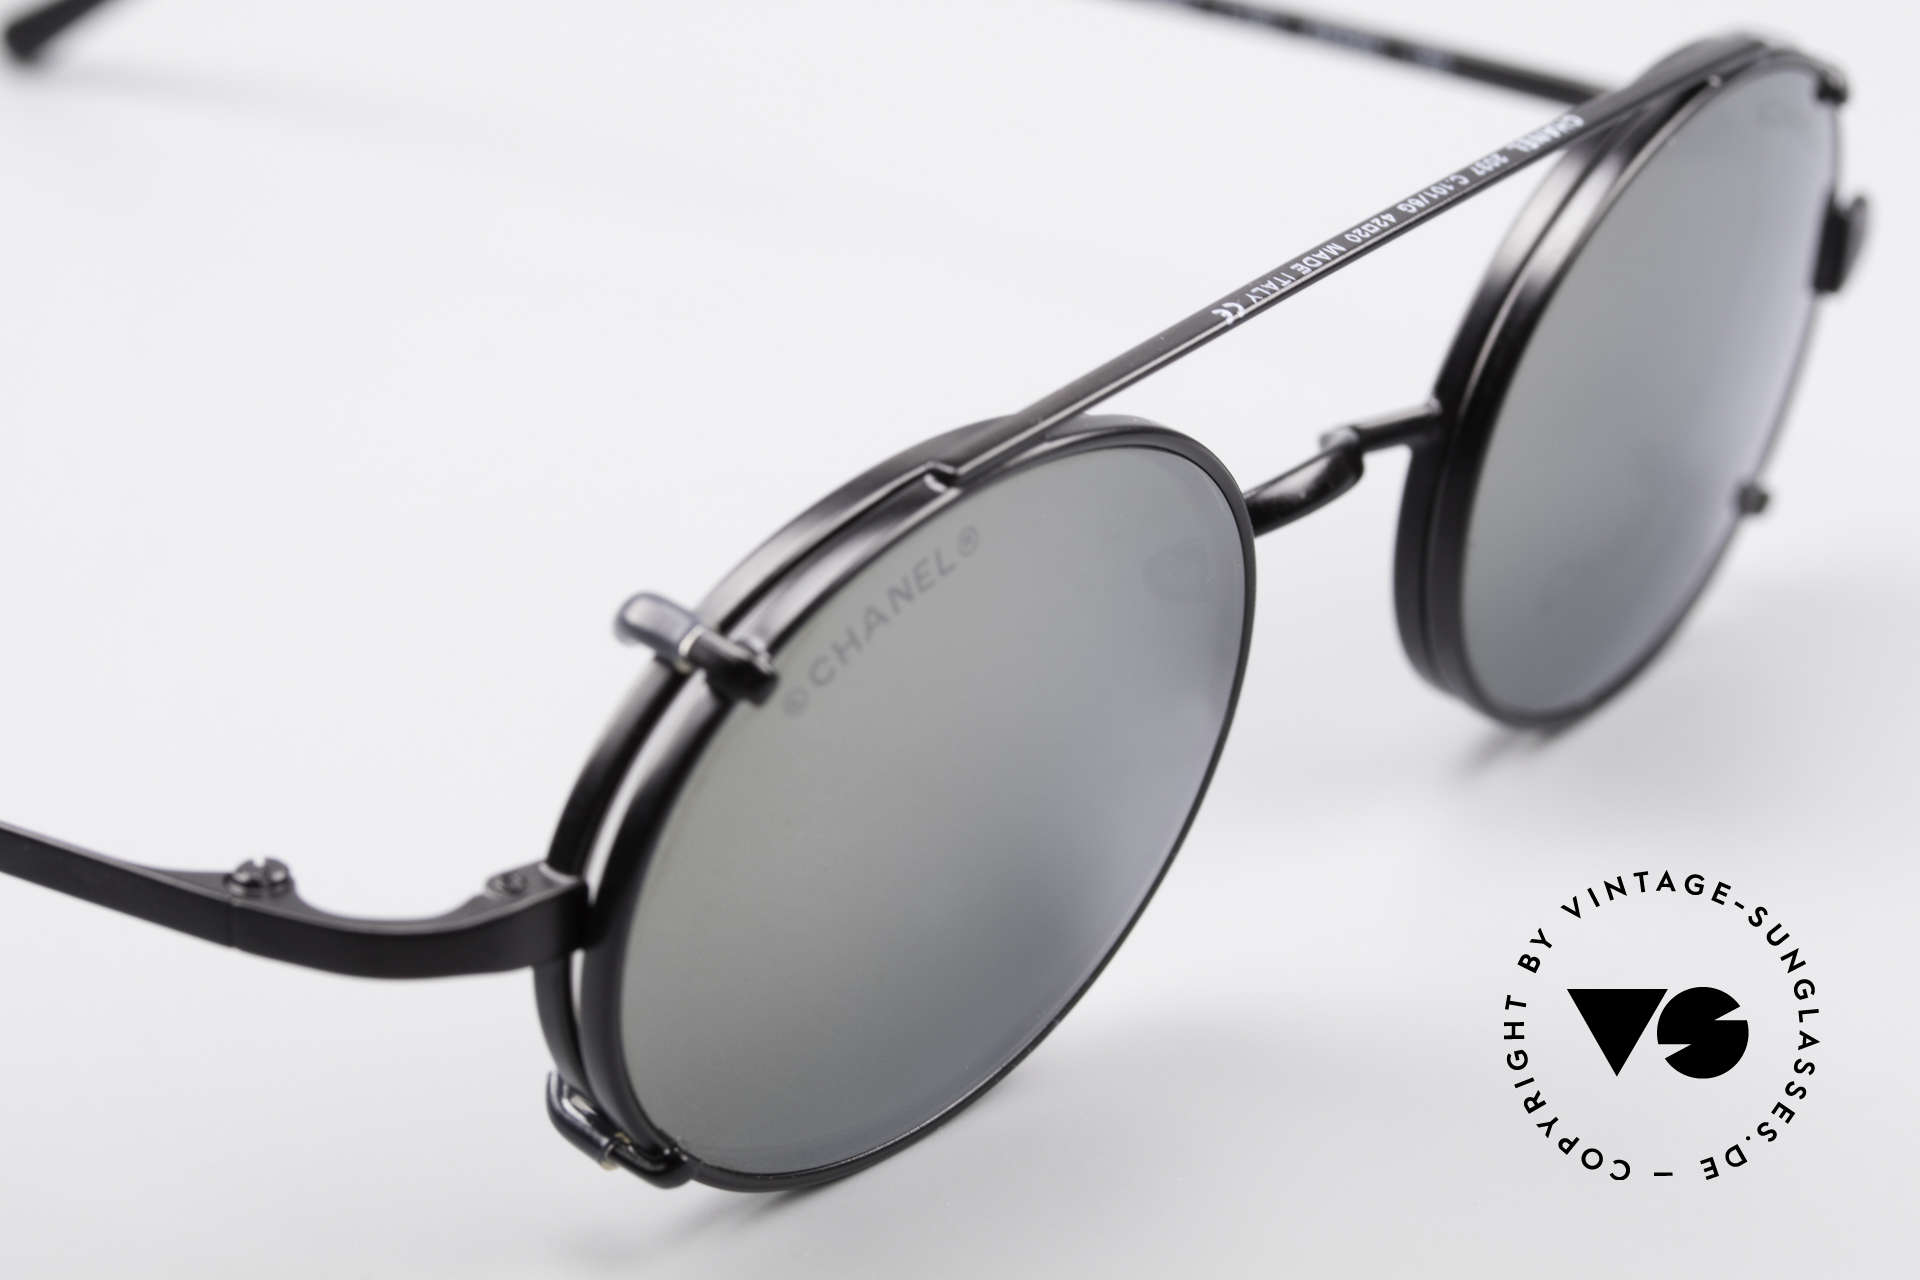 Chanel 2037 Luxury Glasses With Clip On, unworn designer shades (incl. original case by Chanel), Made for Men and Women